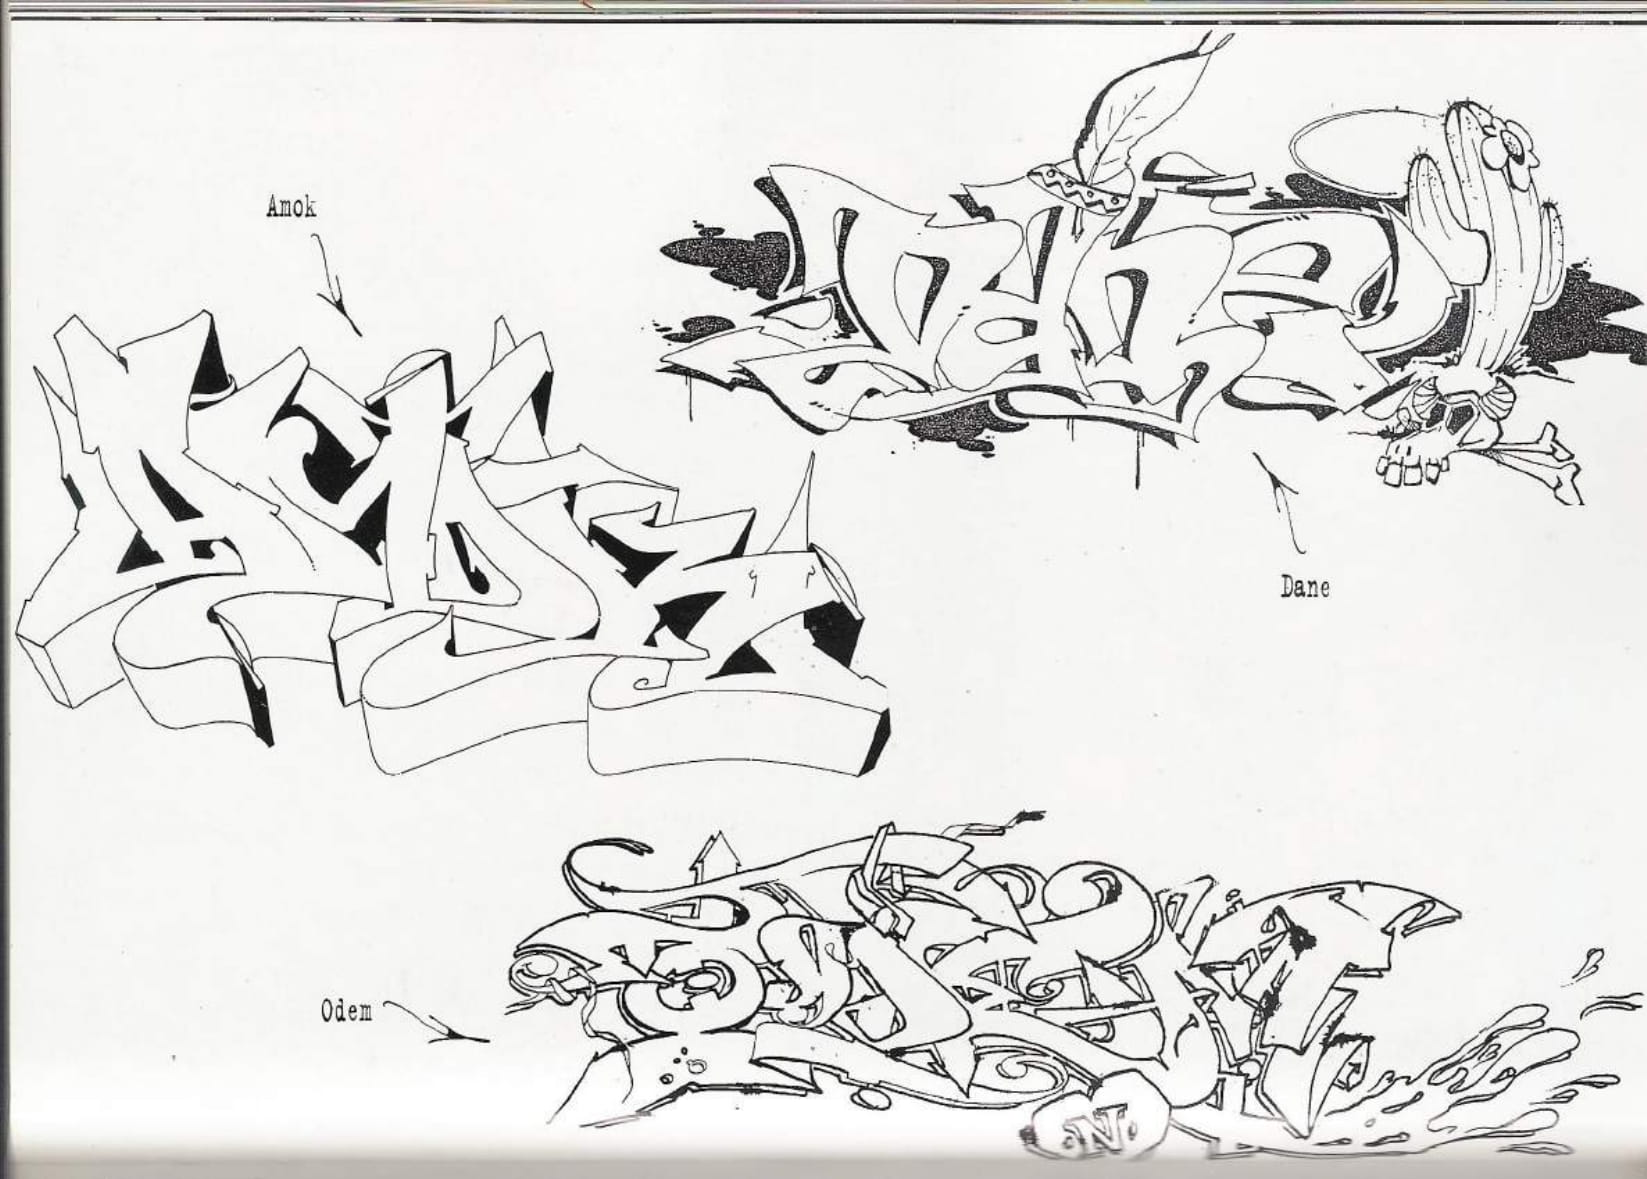 Backjumps.-.Sketchbook-AEROHOLICS-compressed-27.jpg